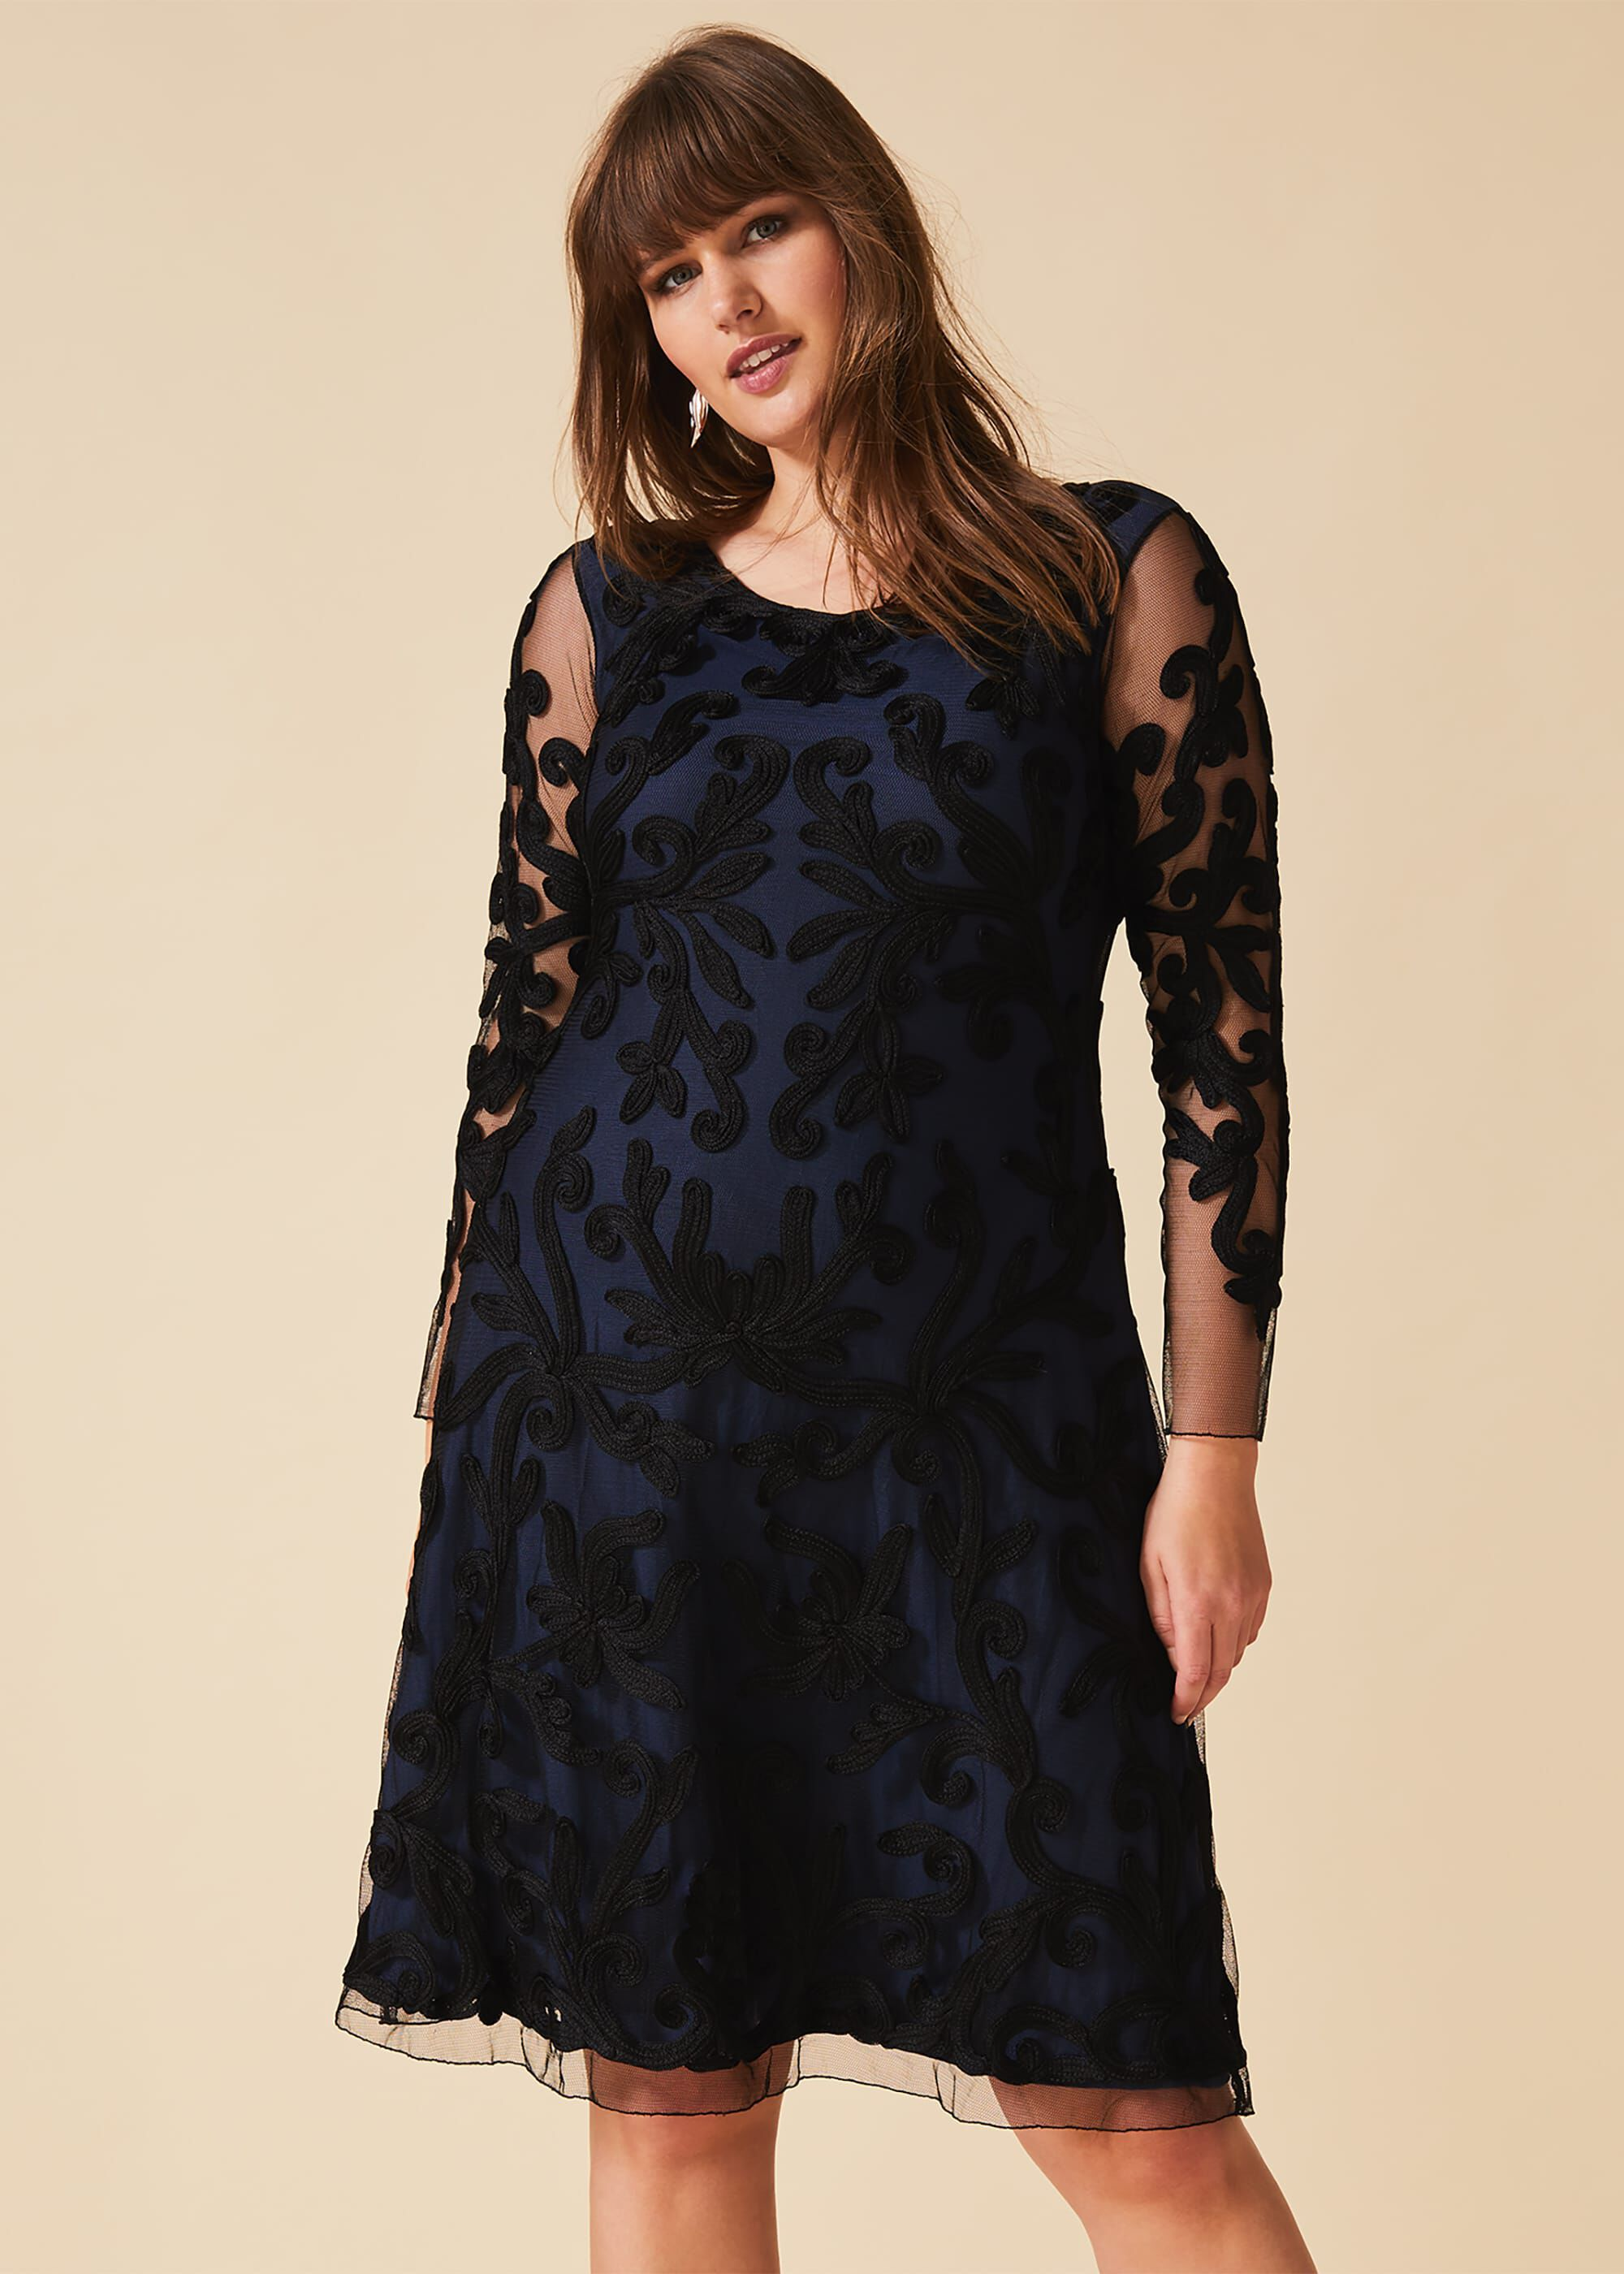 Studio 8 Aimee Tapework Lace Dress, Blue, Cocktail, Occasion Dress